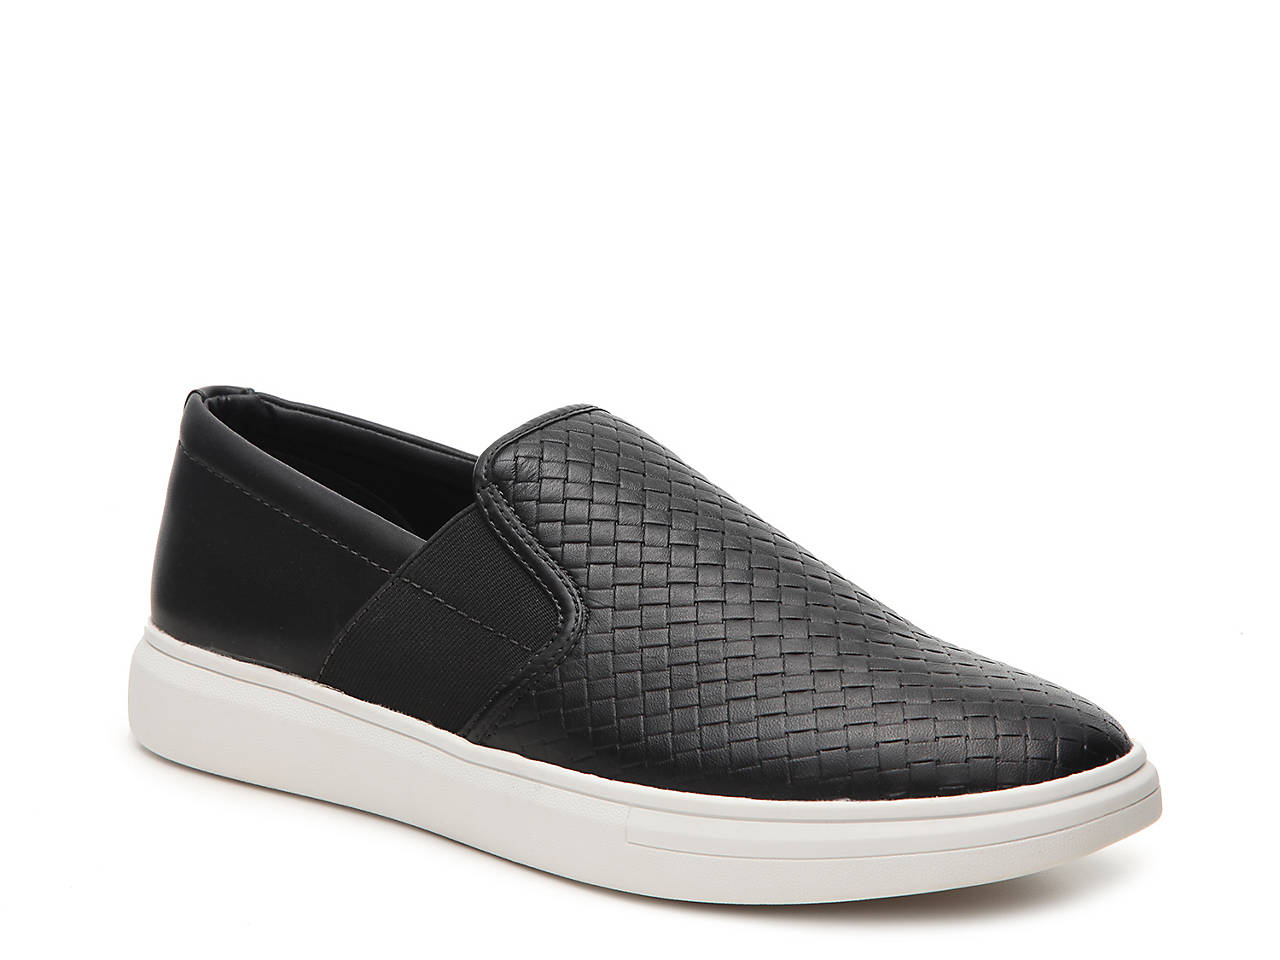 8c92880cc Sam Edelman Jason Slip-On Sneaker Men s Shoes